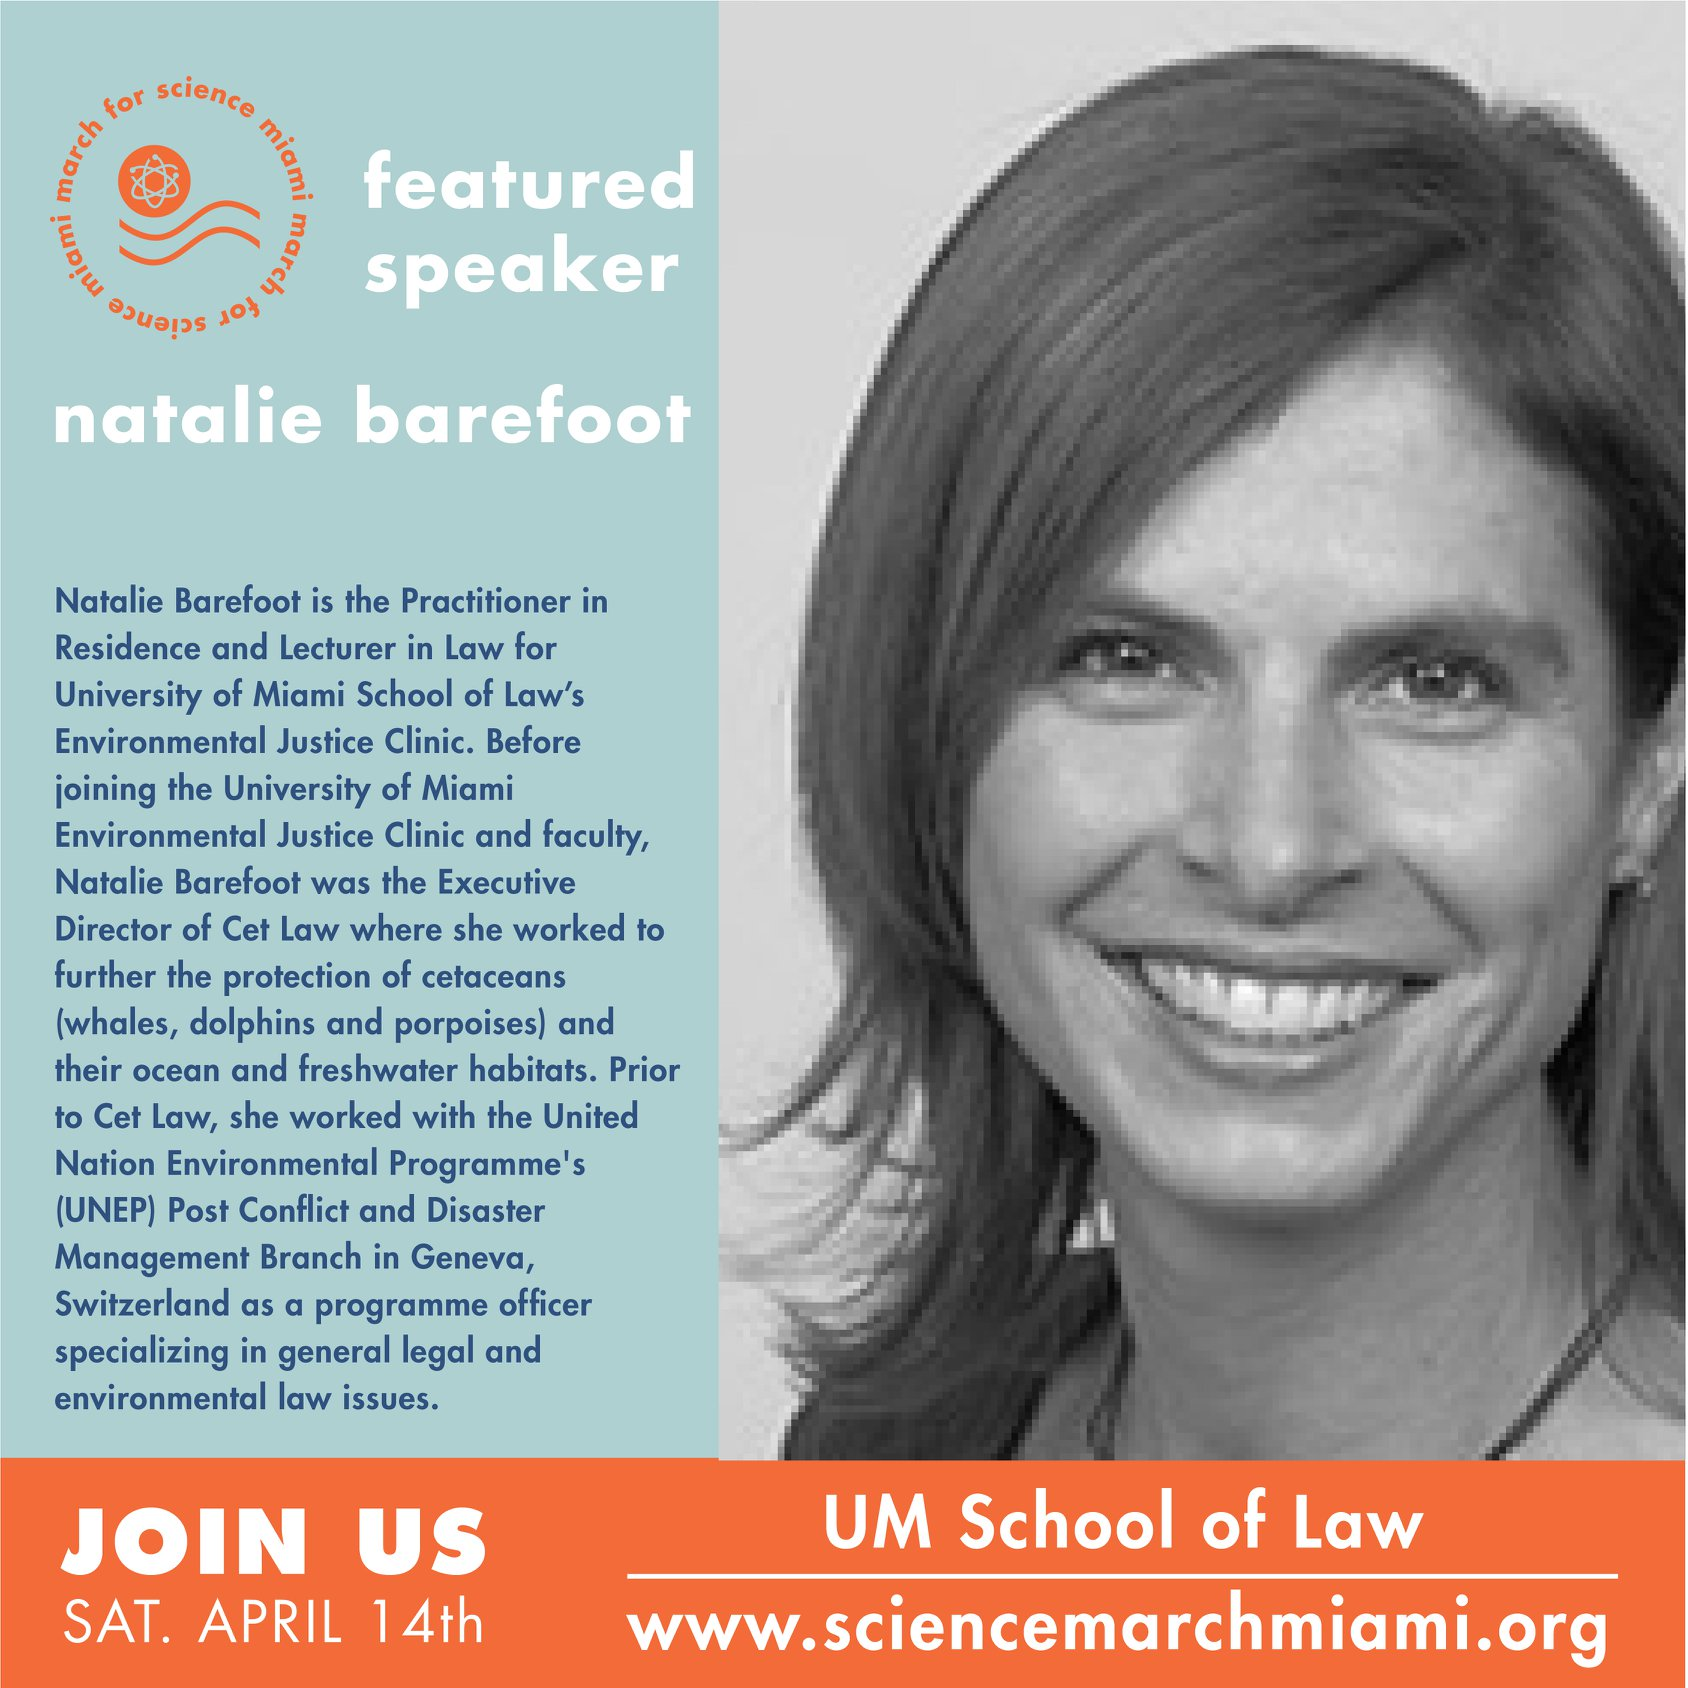 natalie barefoot, esq.   practitioner-in-residence in the university of miami's school of law  environmental justice clinic .